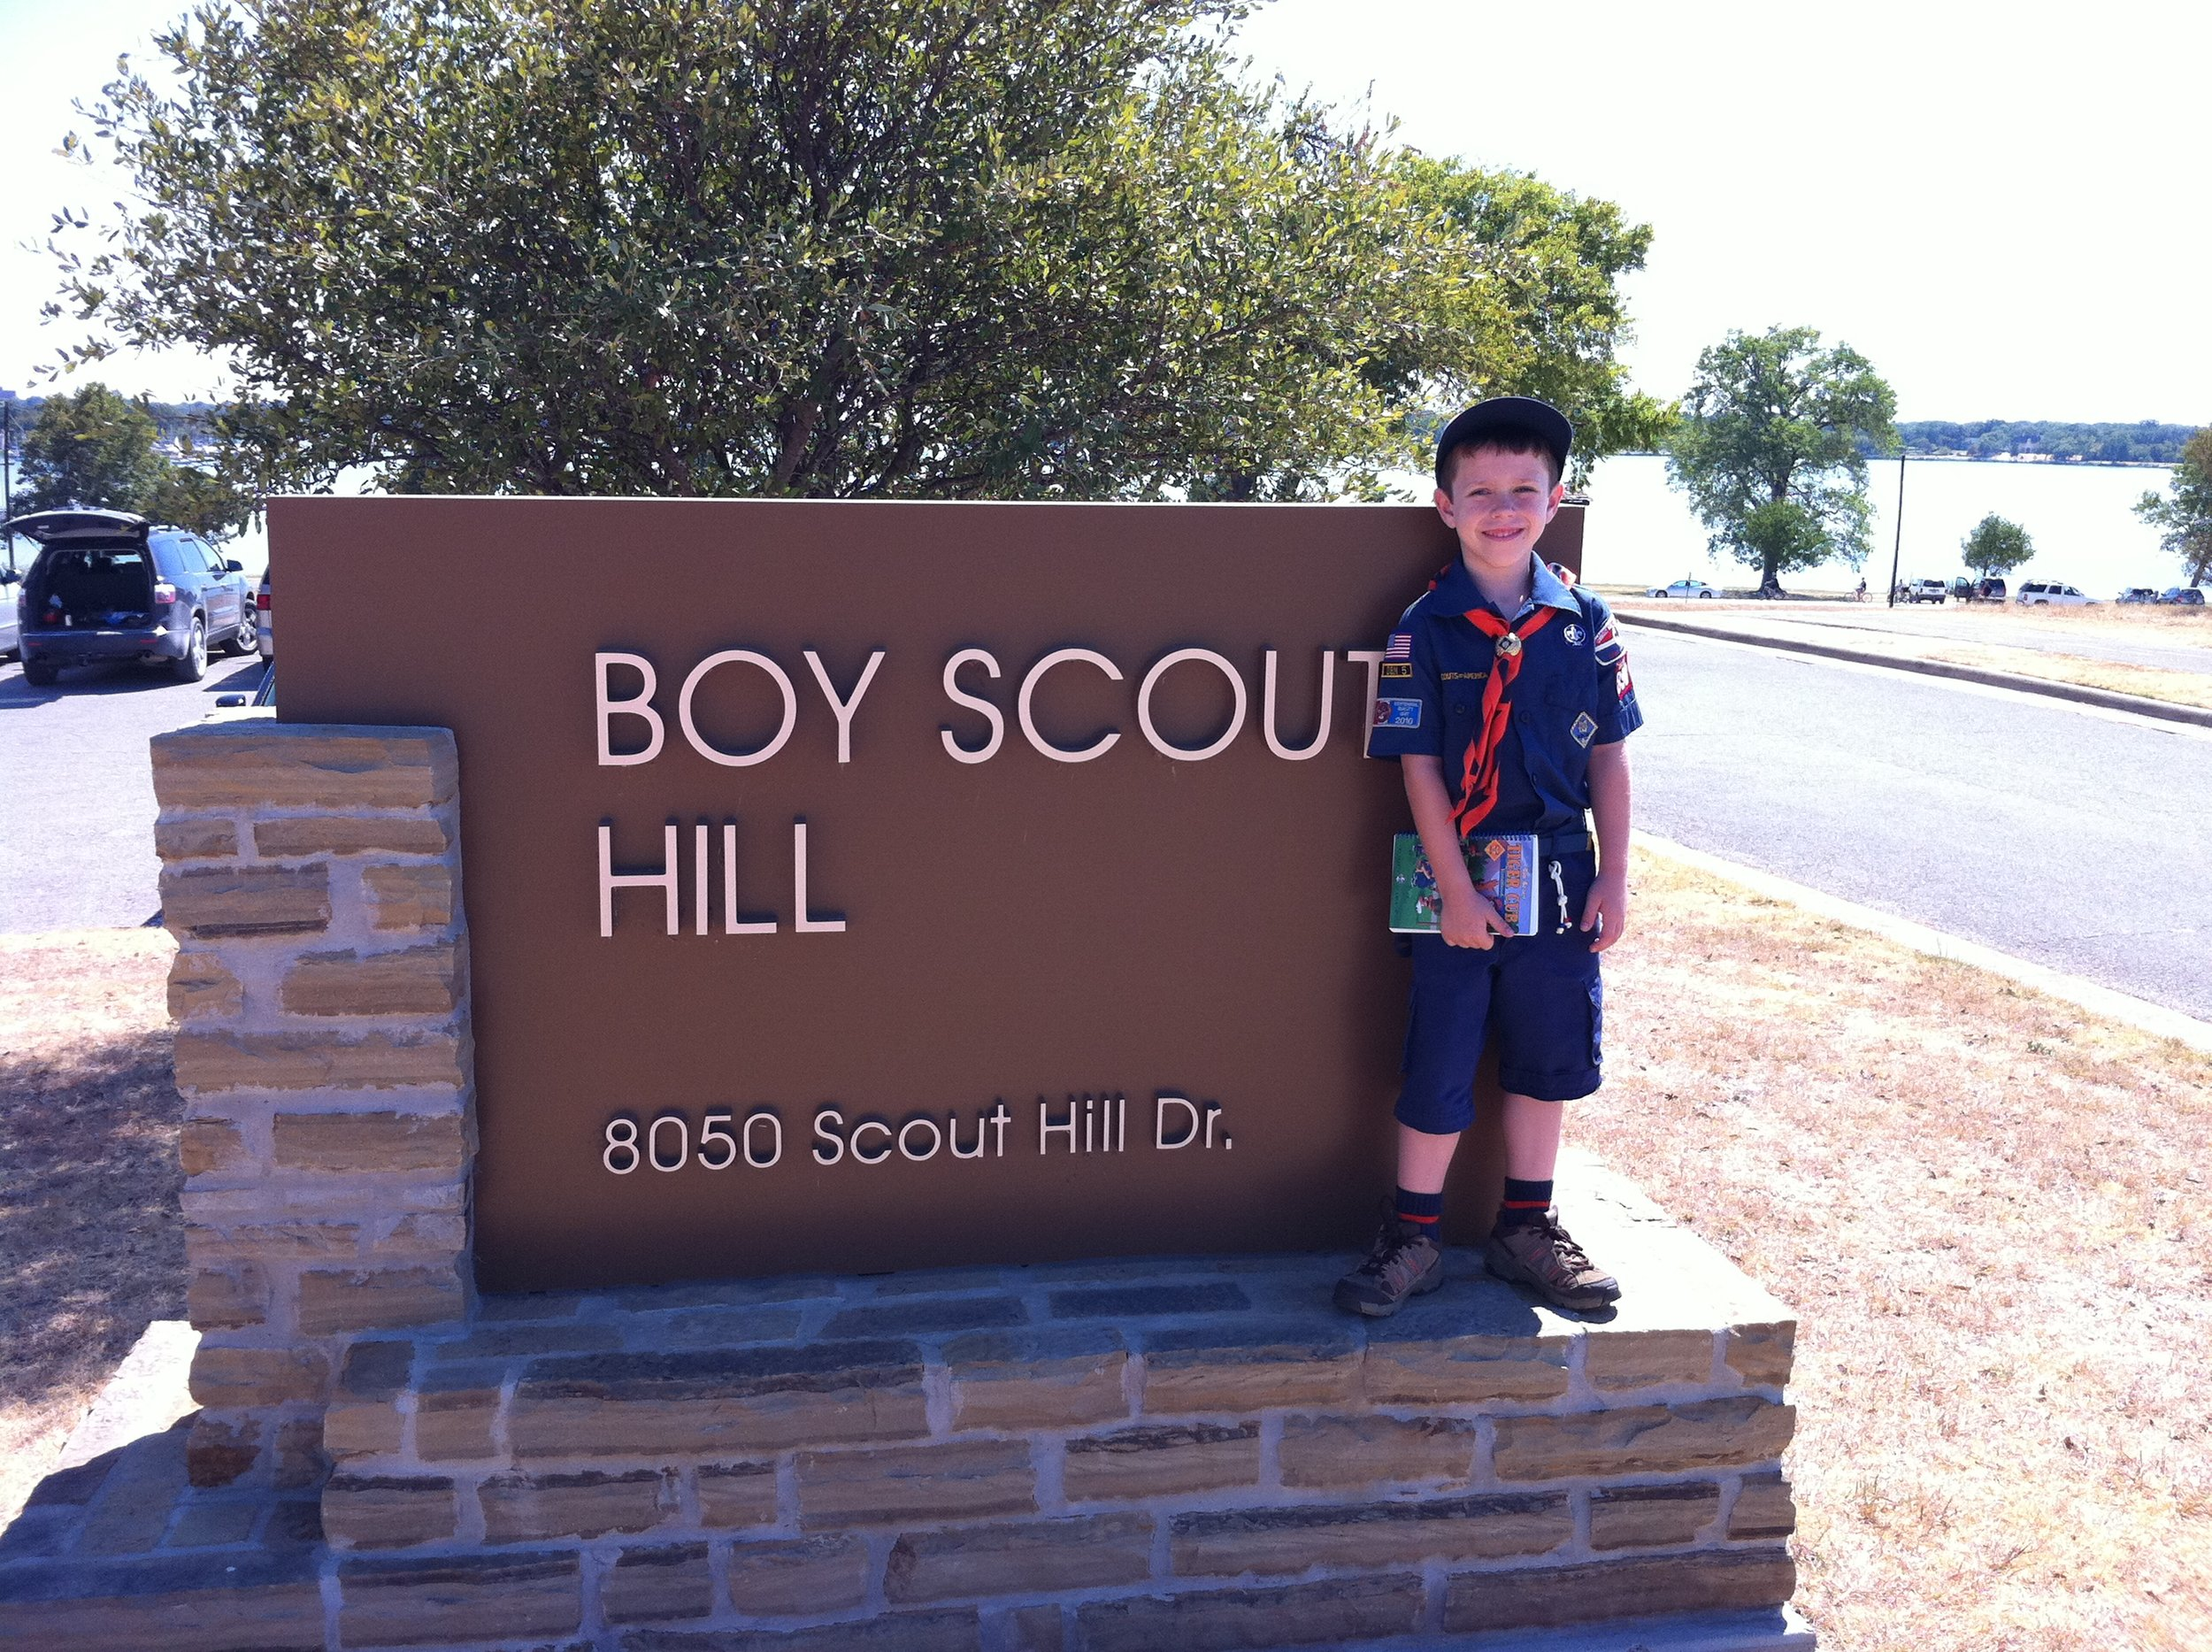 Cub scout pack 890 - They start as little Lions and Tigers. Girls and boys. Then they grow up.